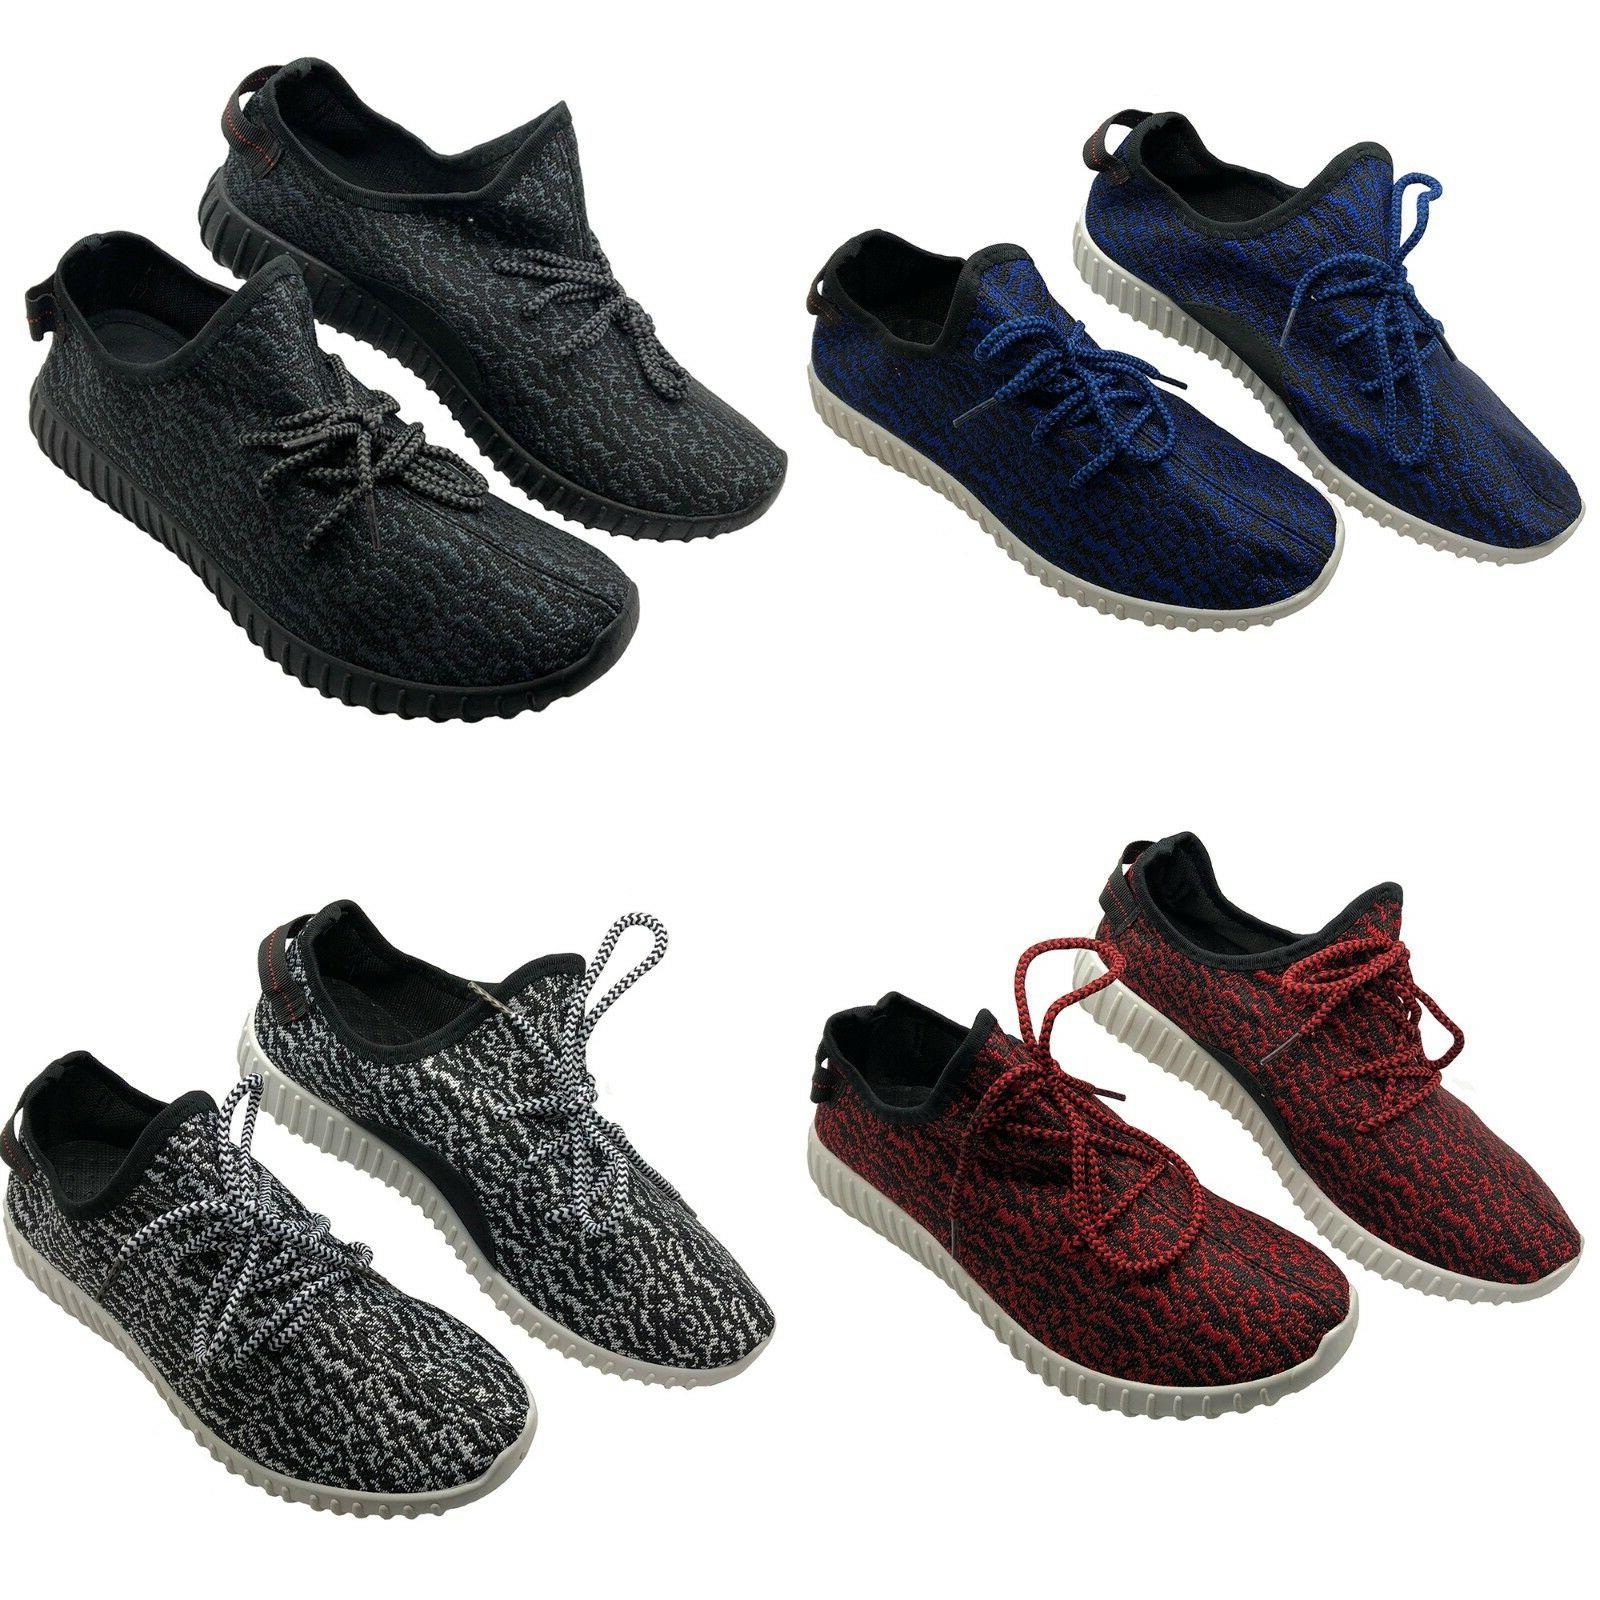 Men's Cloth Shoes Breathable Flat Sport Sneakers Athletic Ru